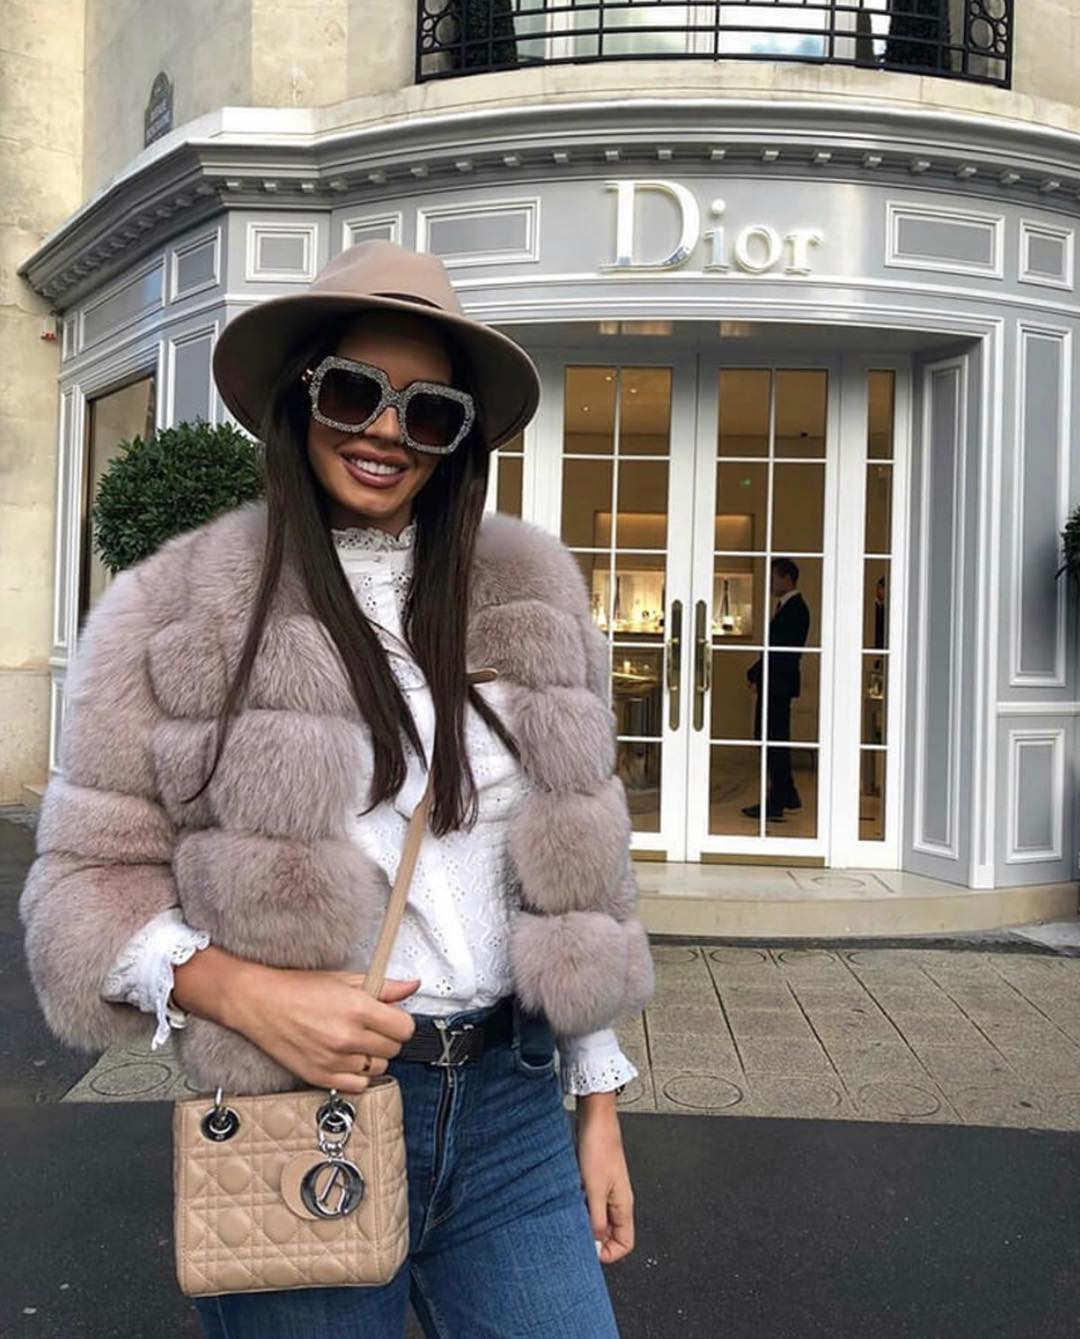 Fur Jacket, Oversized Shades, Fedora Hat And Denim For Street Chic Look 2019